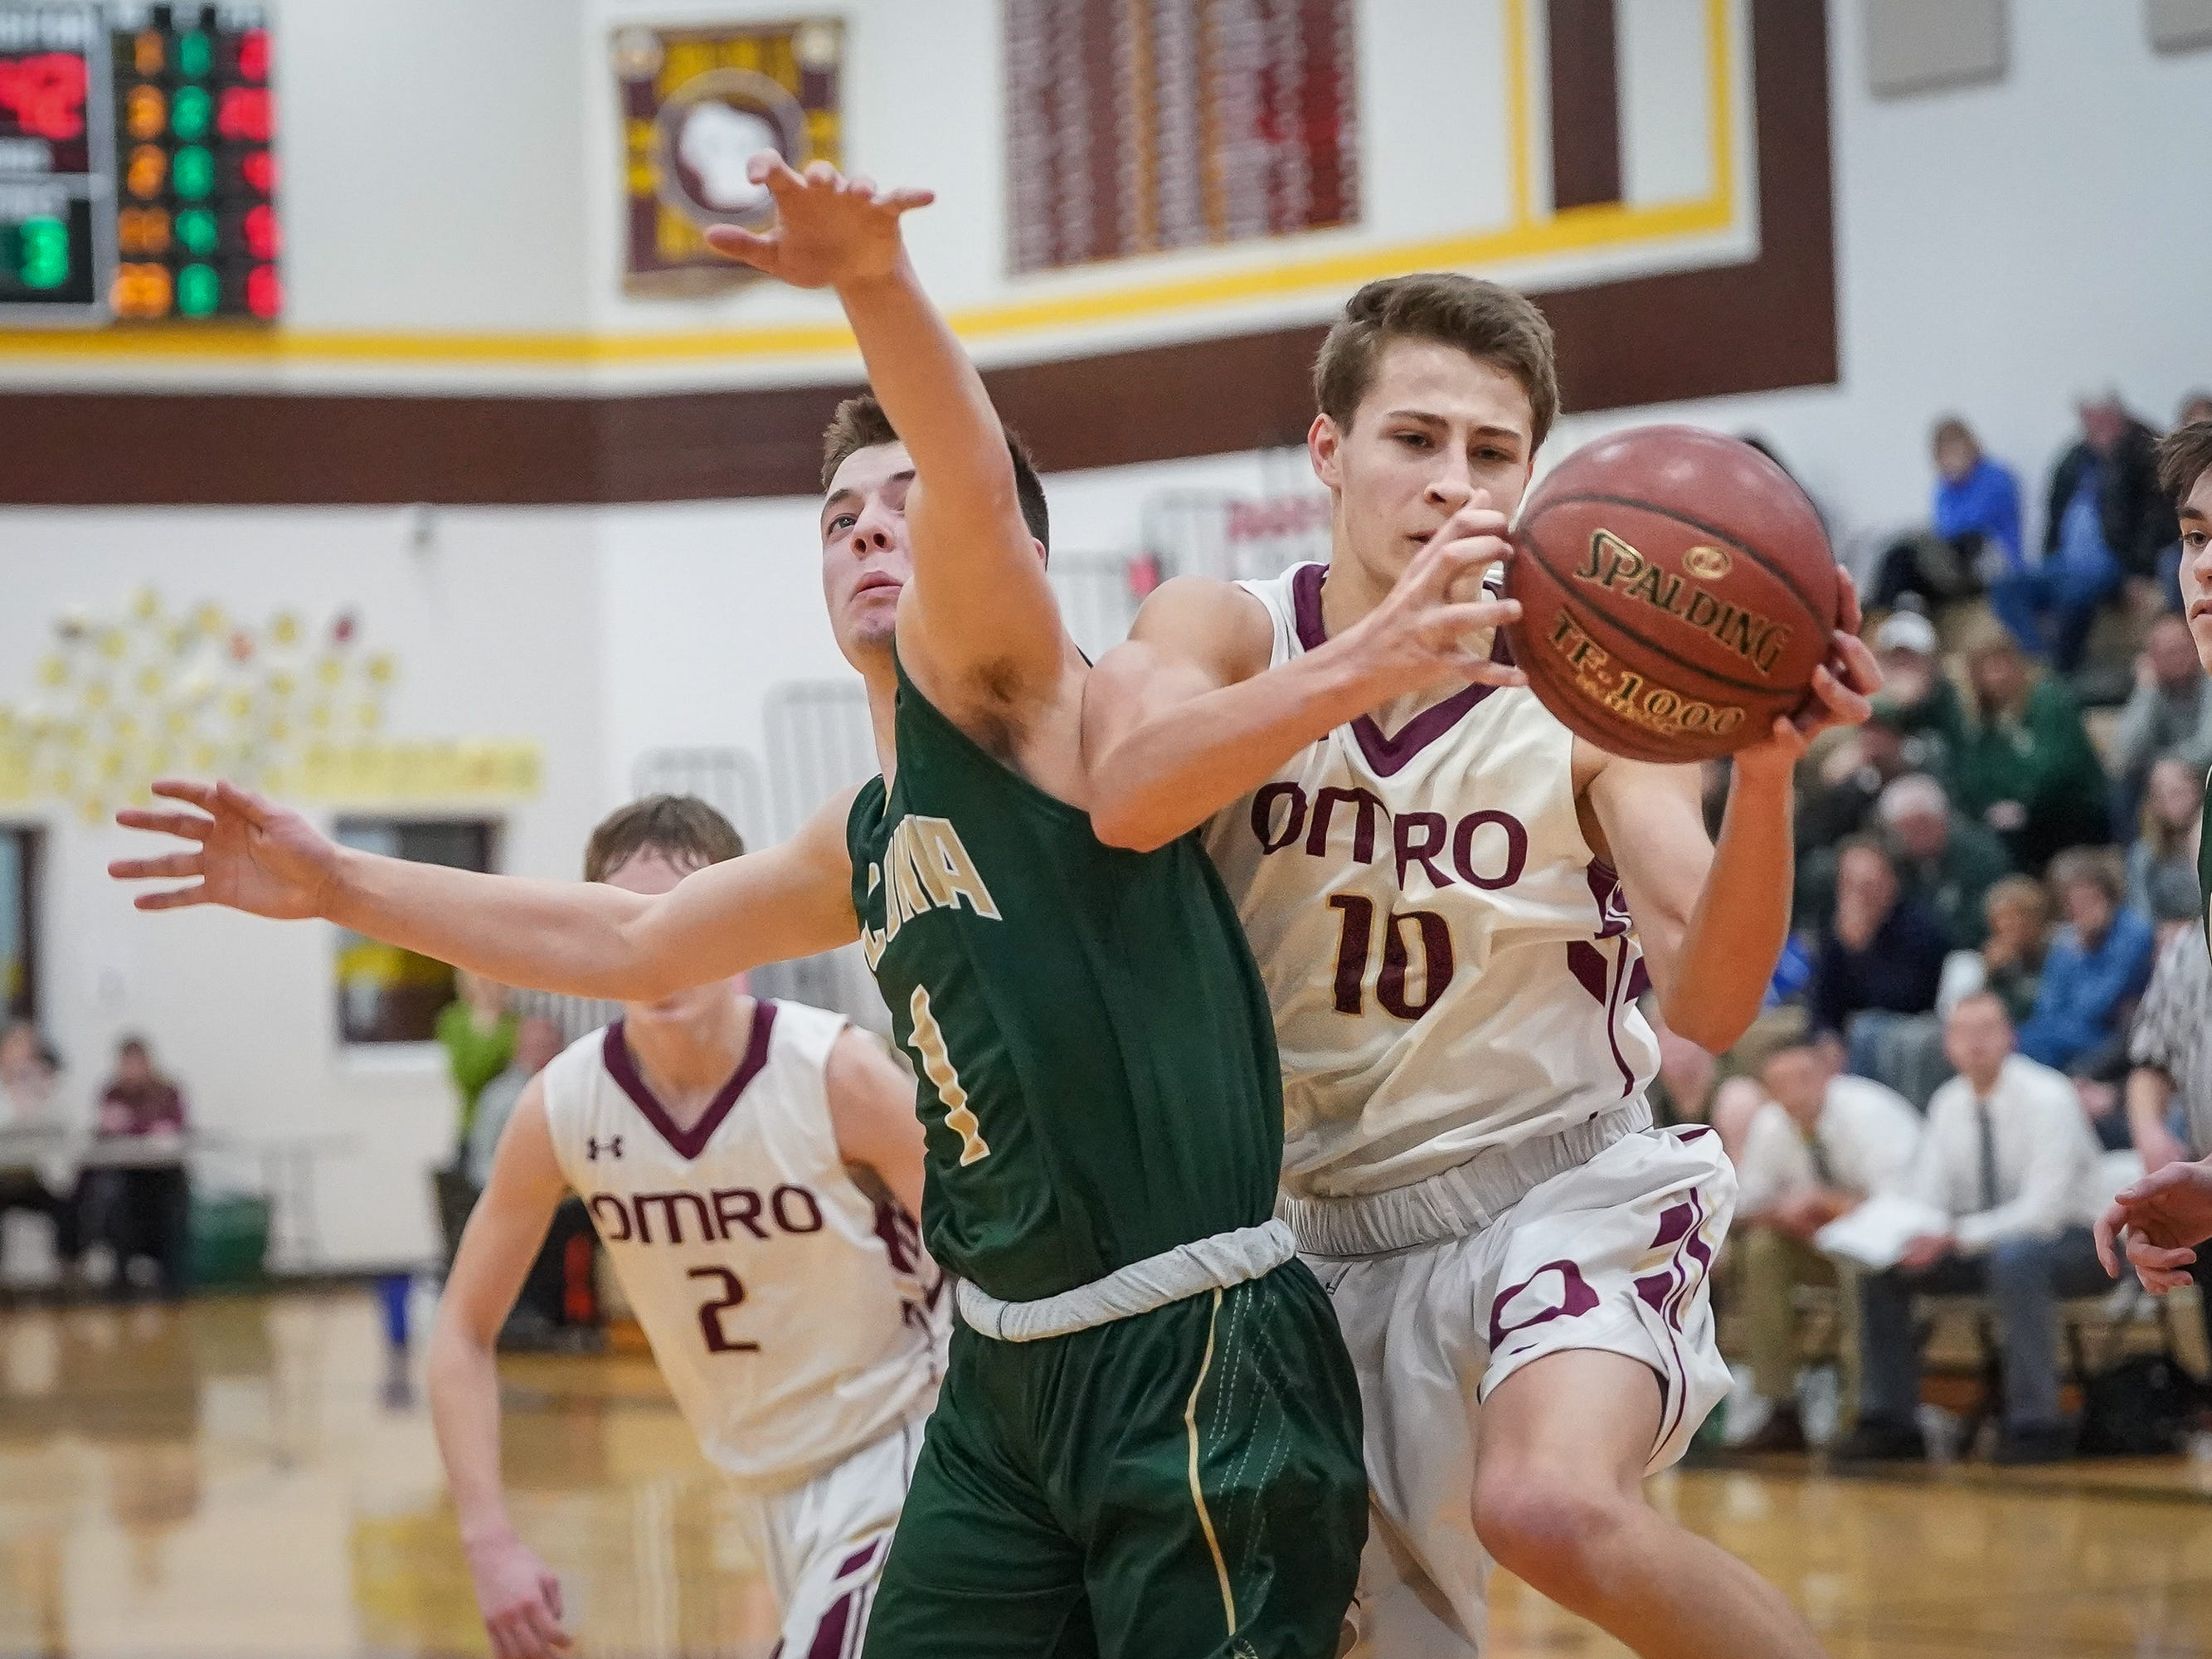 Cade Stachura (10) of Omro battles with Jack Walters (1) of Laconia for a loose ball. The Omro Foxes hosted the Laconia Spartans in a Flyway Conference basketball game Friday evening, January 11, 2019.